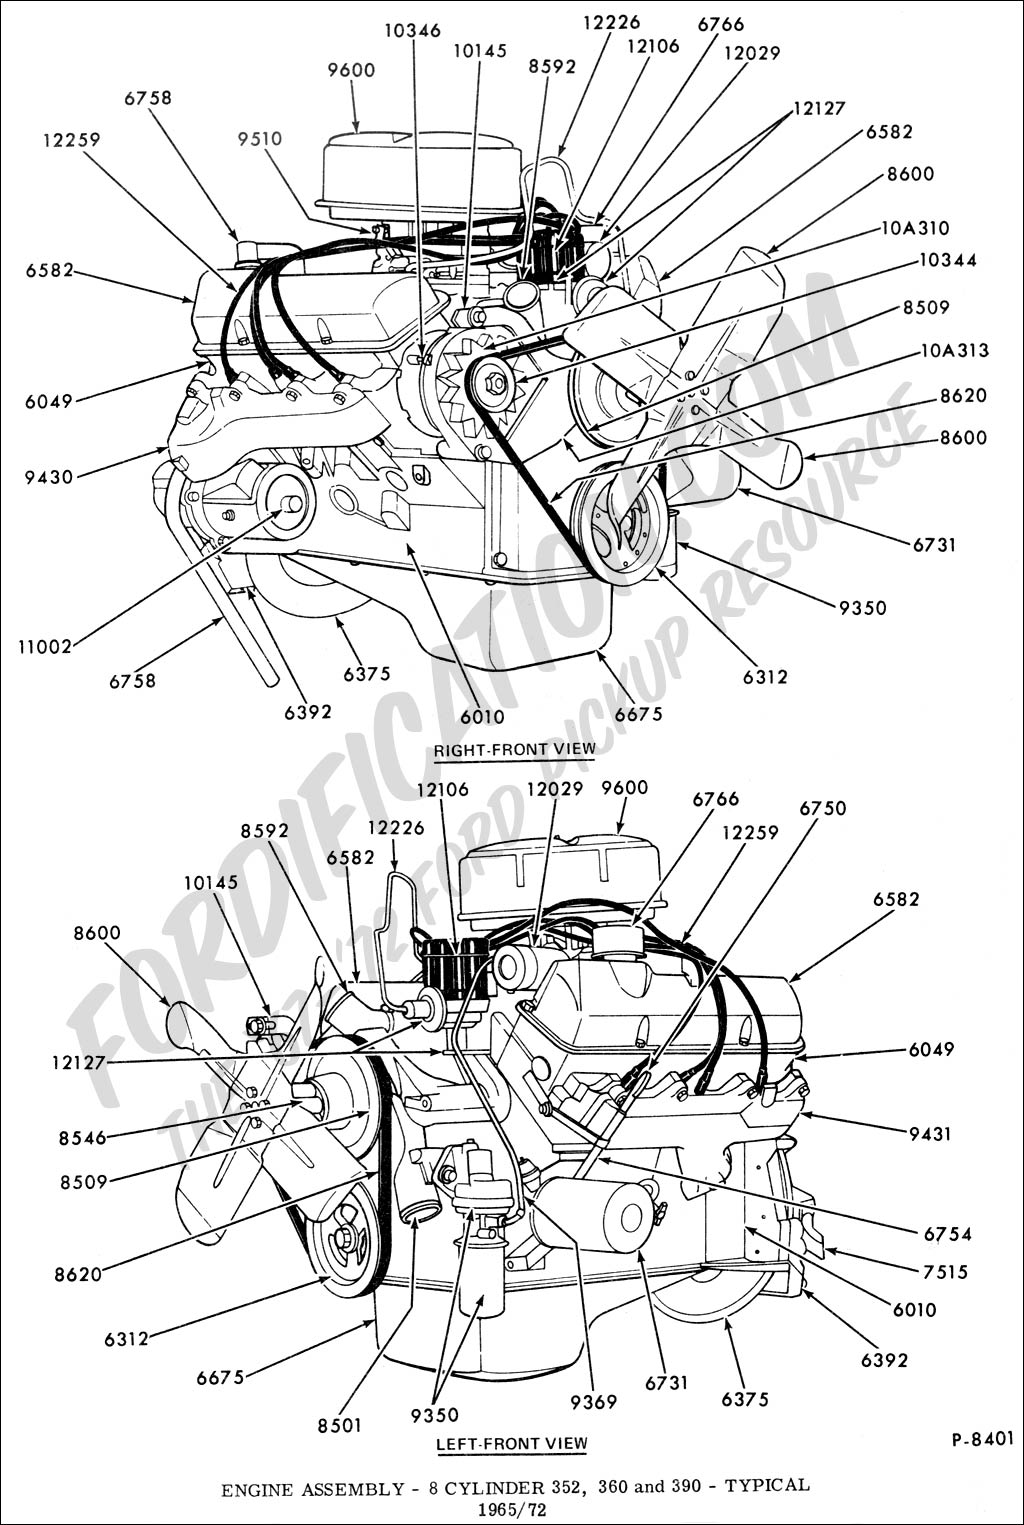 hight resolution of engine assembly 8 cylinder 352 360 390 fe typical